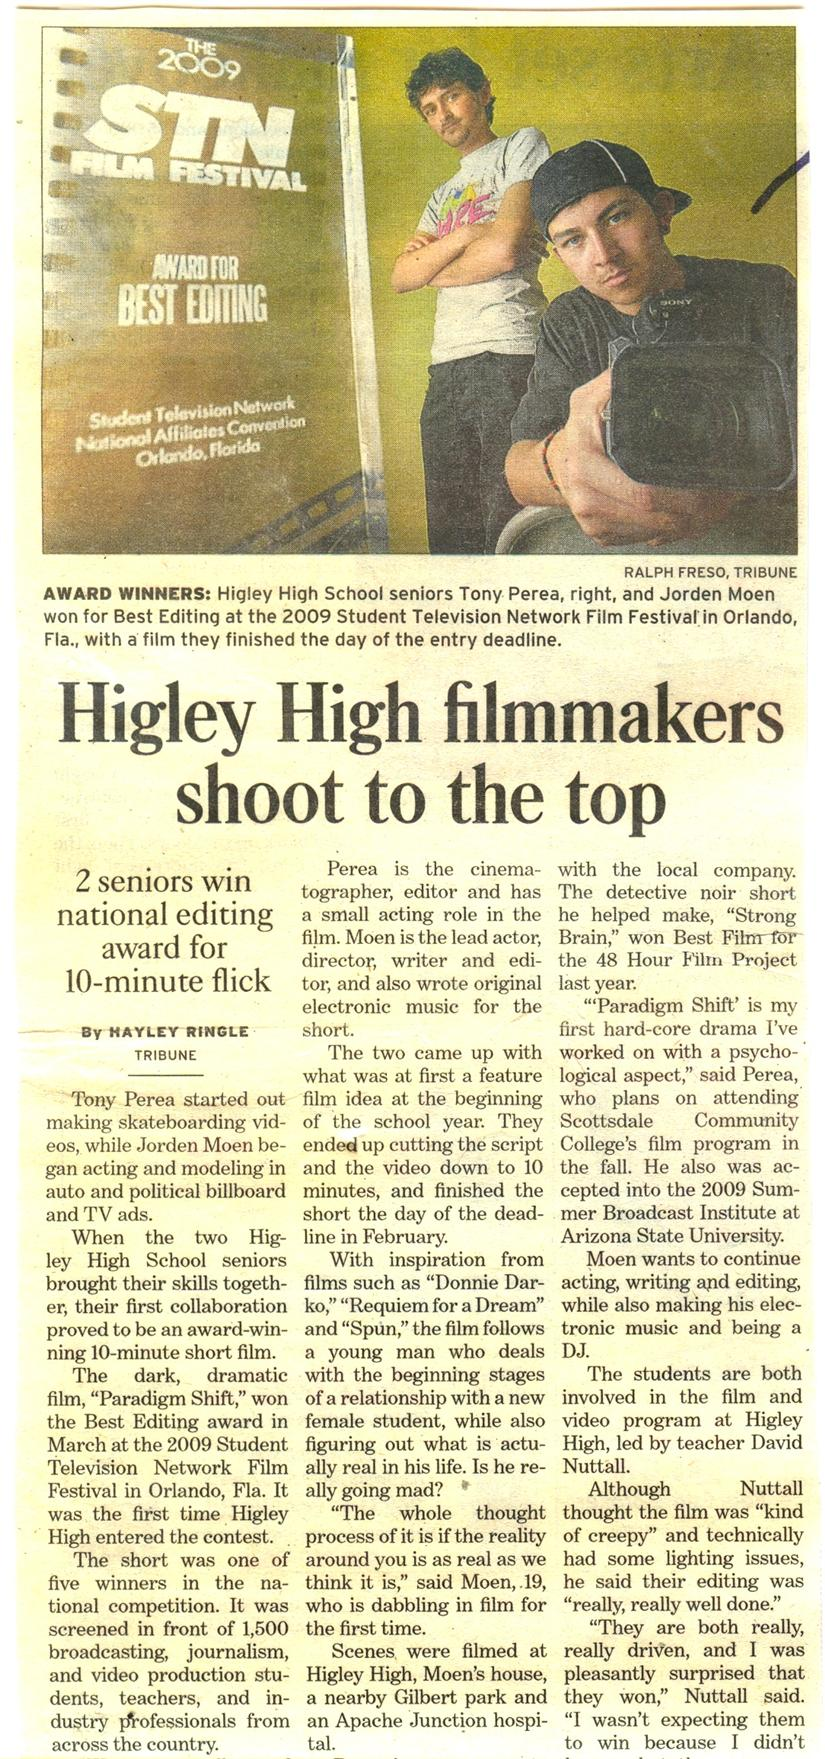 Higley Filmmakers shoot to the top, winning Higley High School's first national film award. Students won Best Editing for their film submission, Paradigm shift.